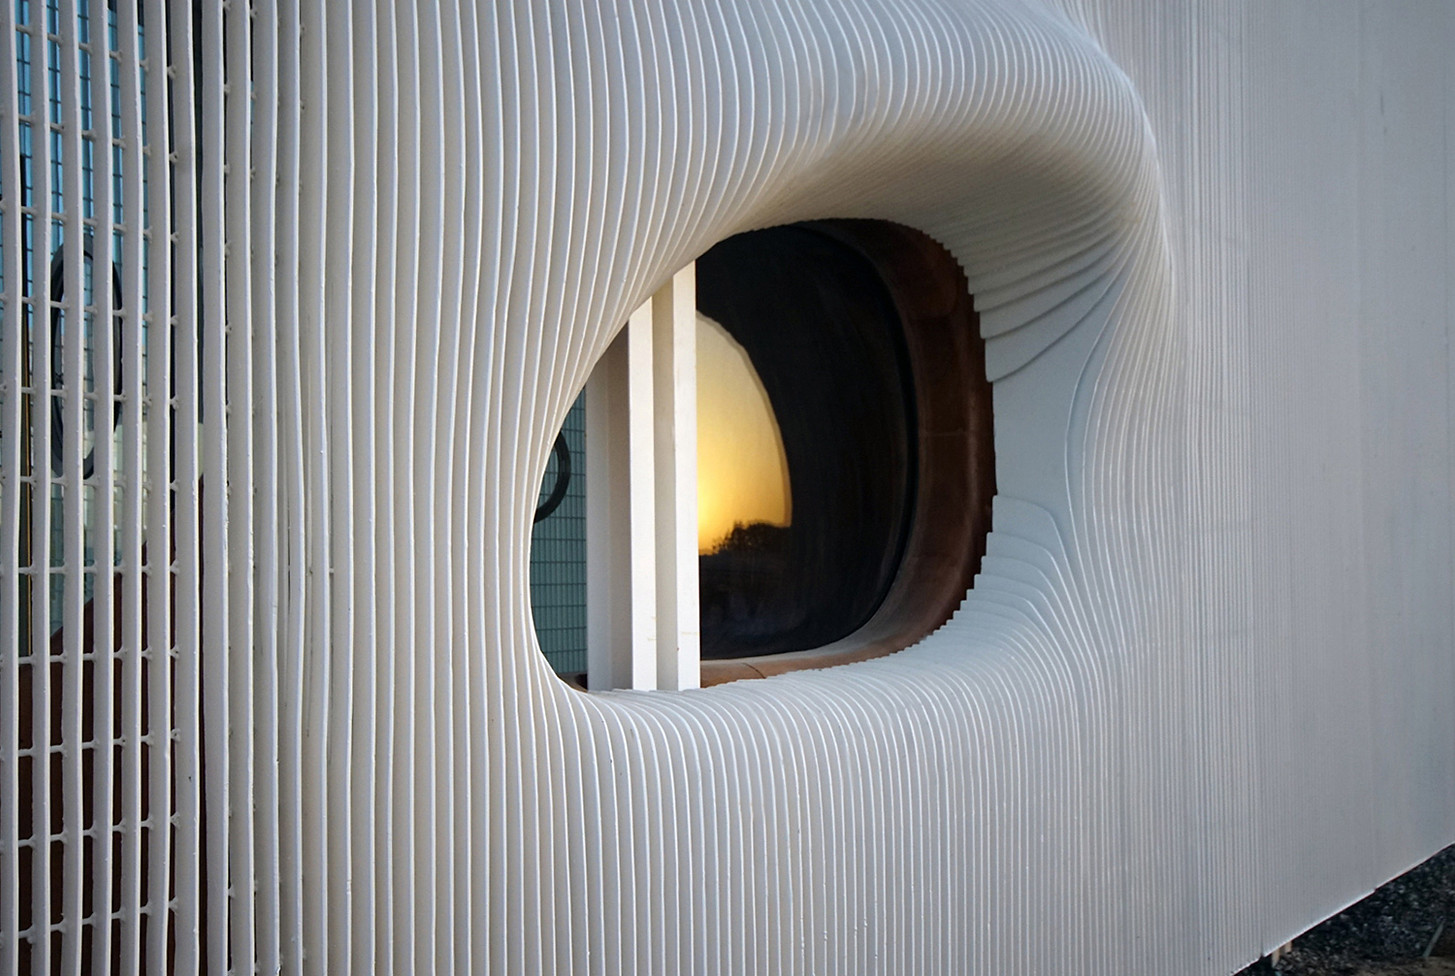 Detail view of Oculus window at sunset